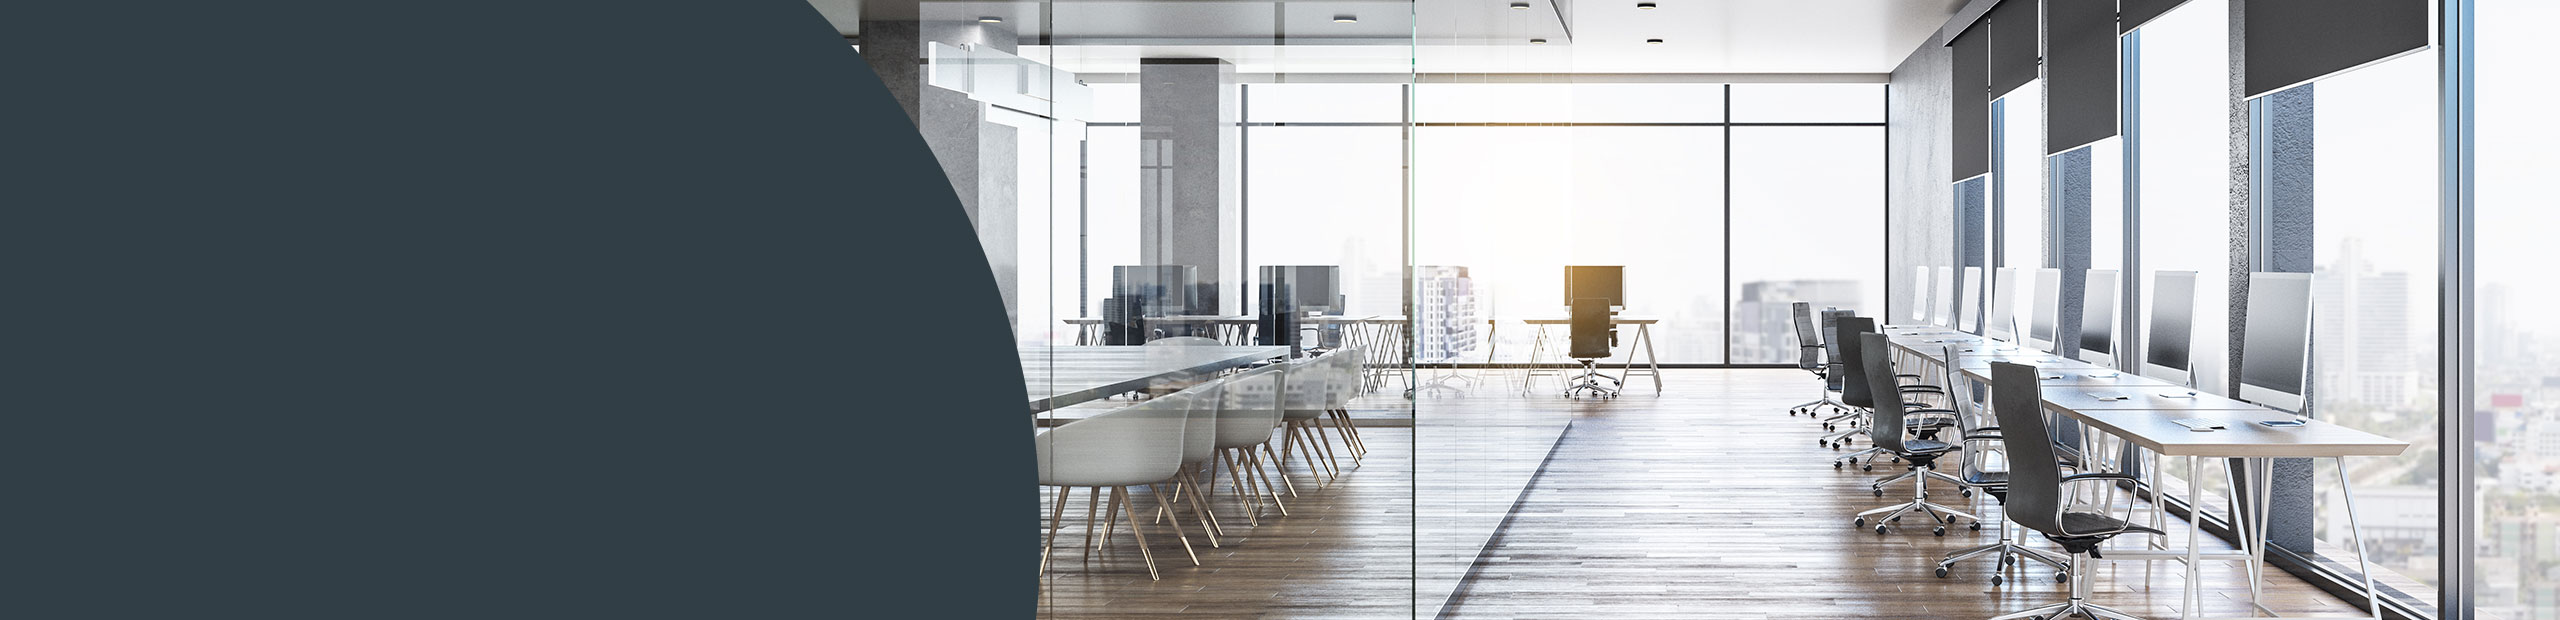 Commercial Cleaning Essex